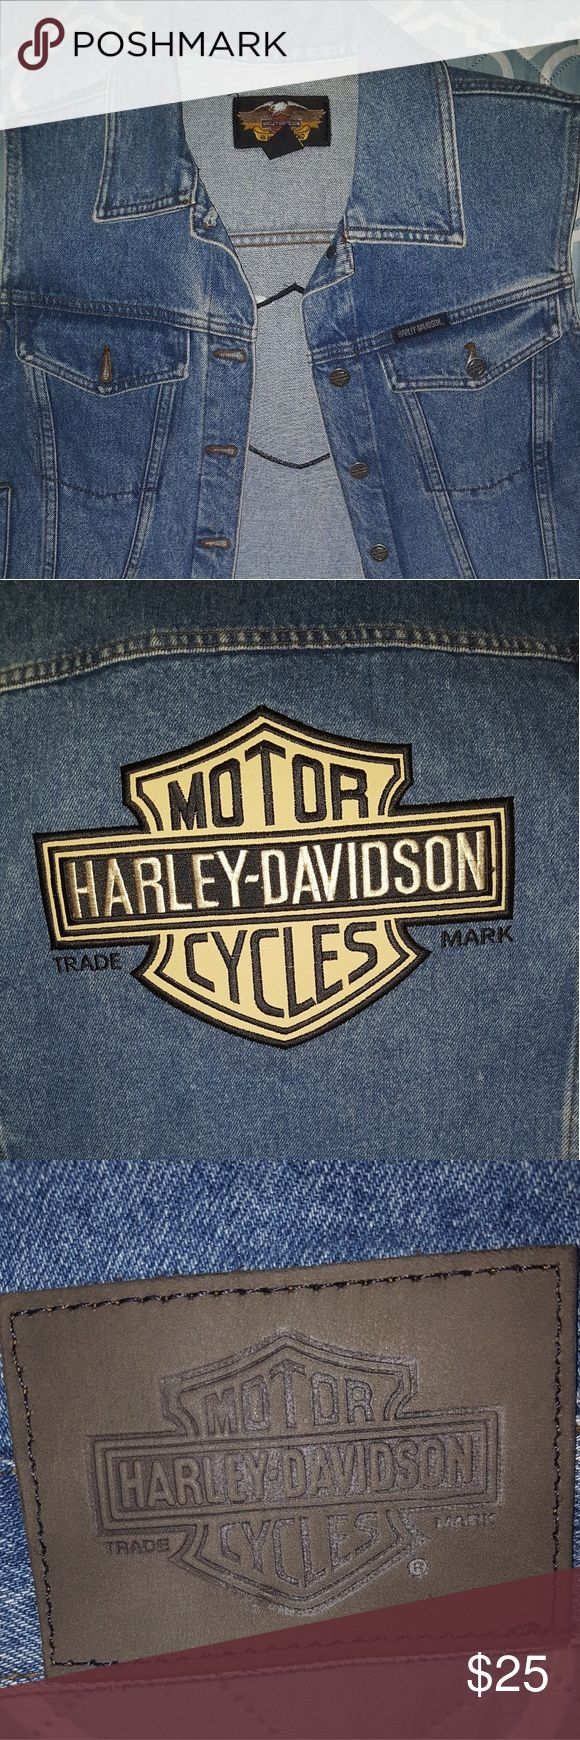 Sleeveless Harley Davidson Jean Jacket/Vest Harley Davidson sleeveless denim Jean jacket with logo embroidered patch on the back, also Harley buttons and Harley leather patch on the back lower hem Harley-Davidson Jackets & Coats Jean Jackets